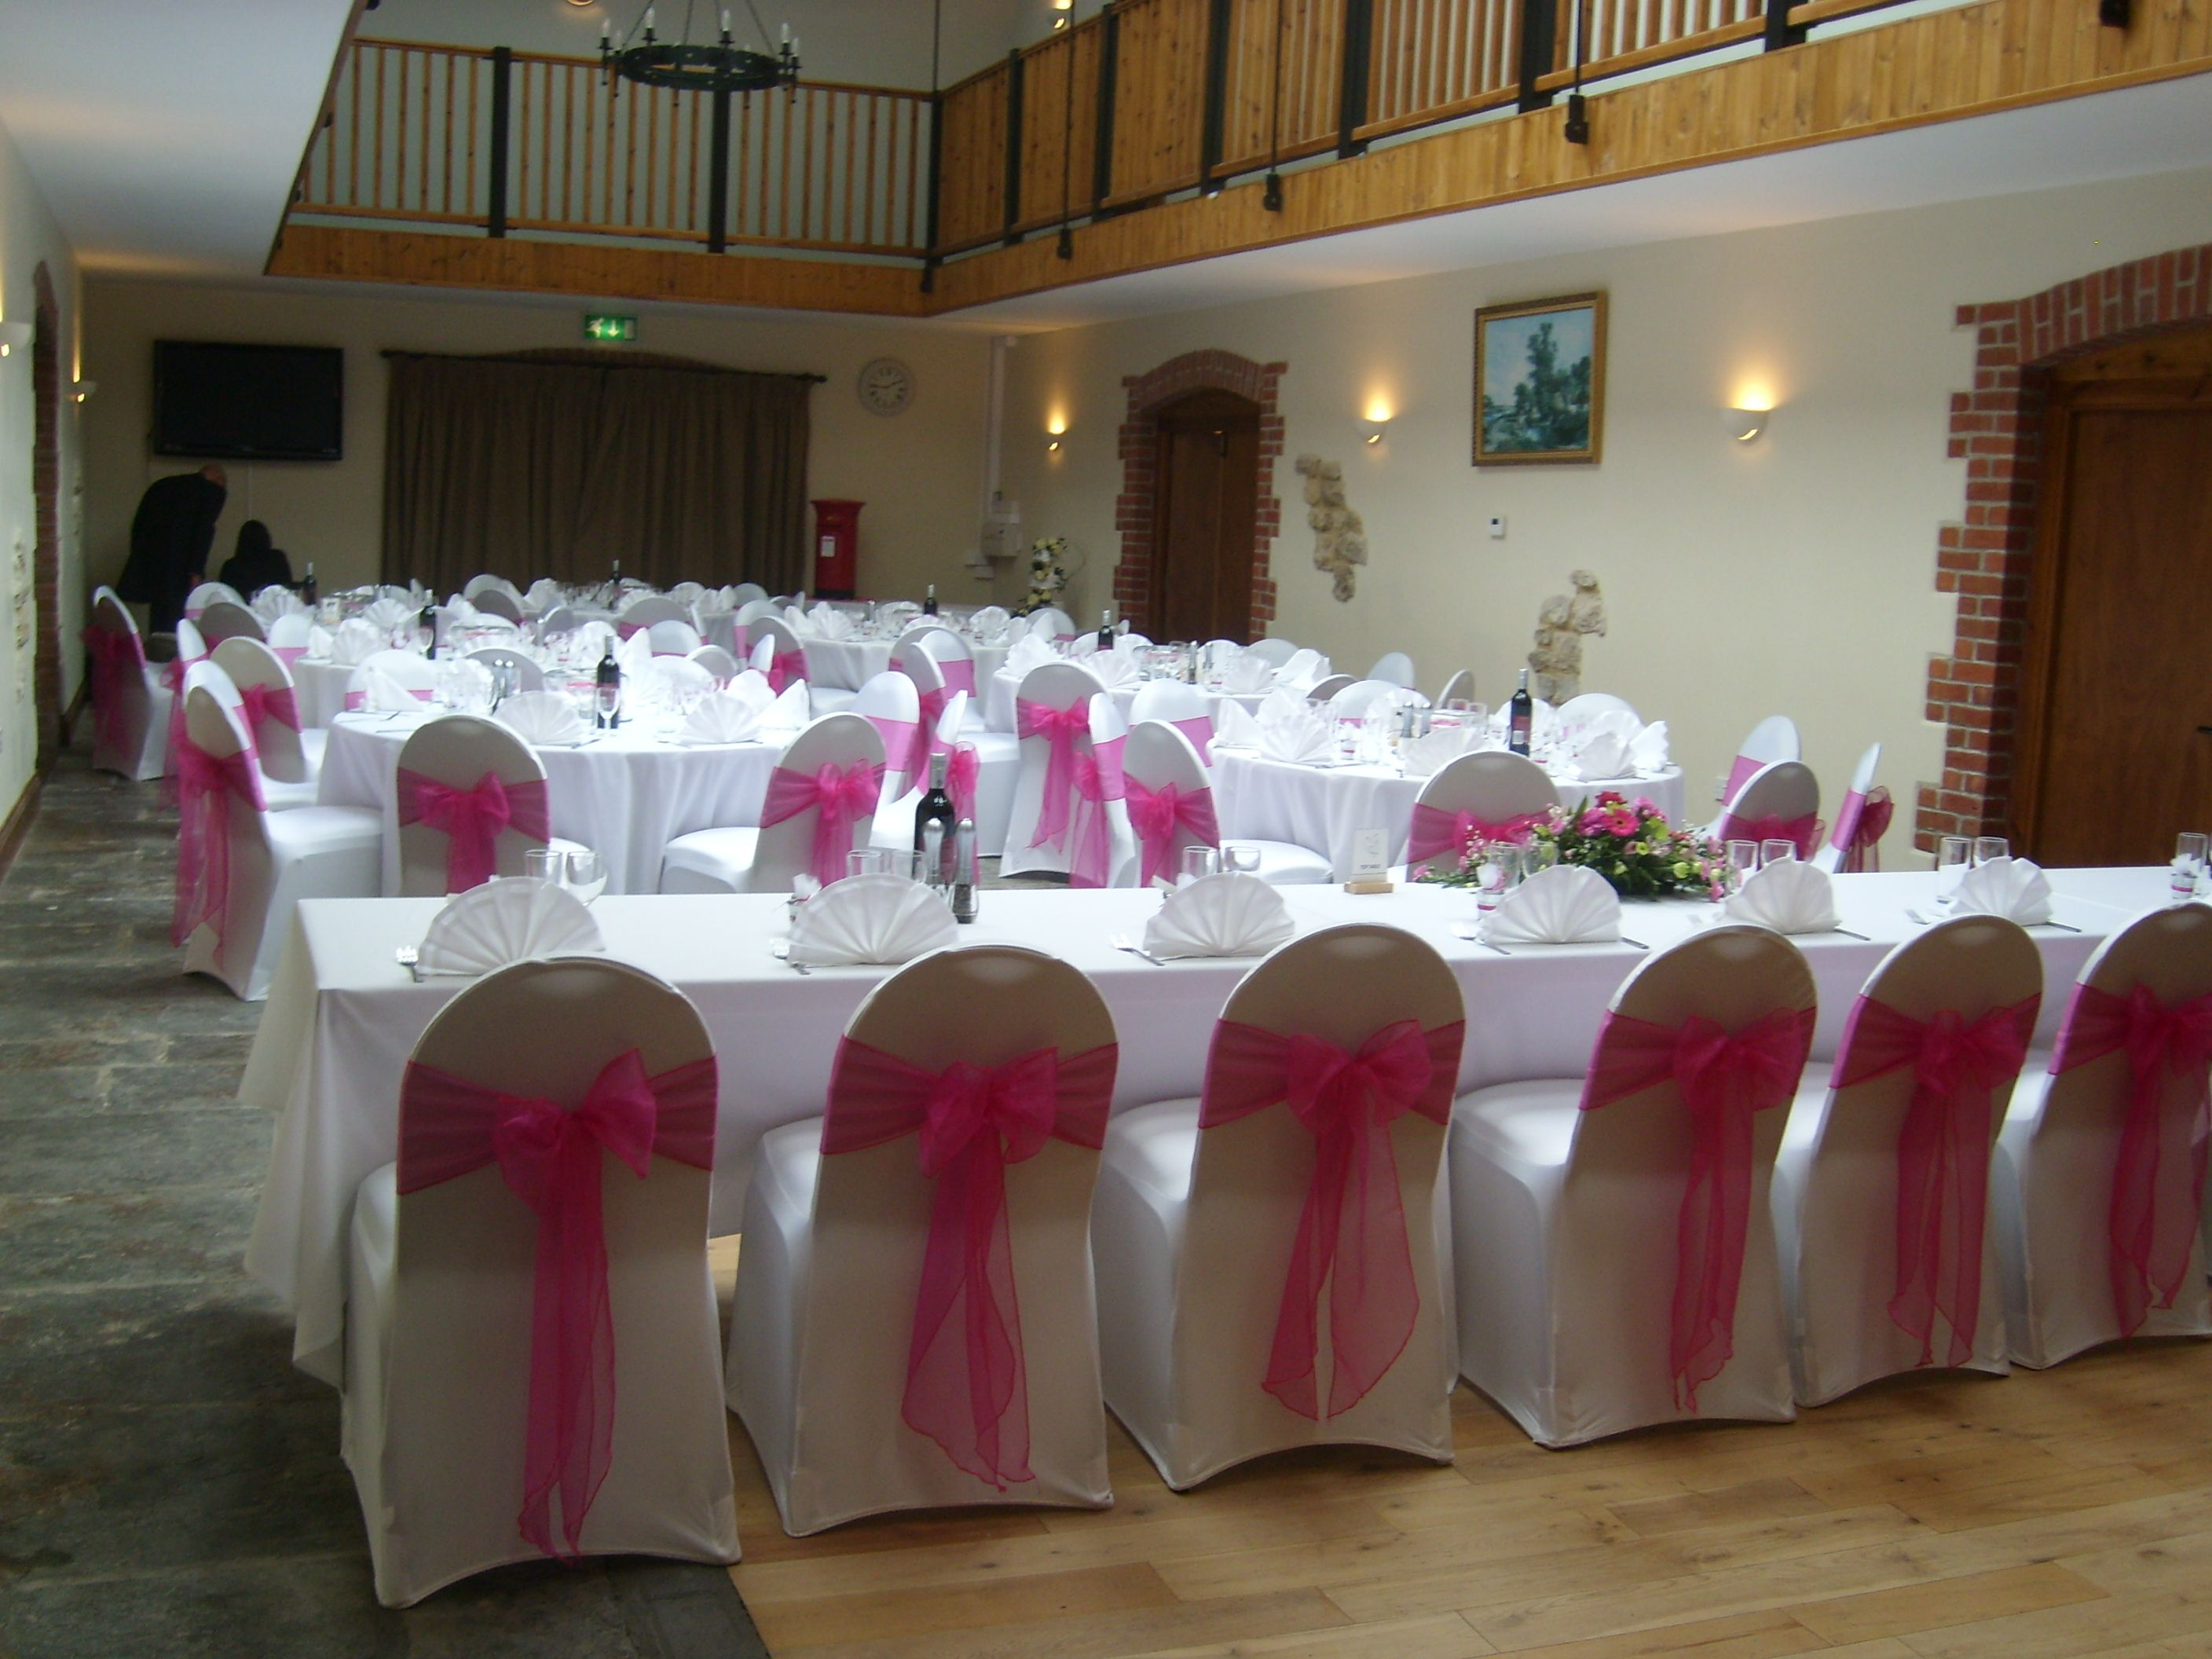 The Victorian Barn Is An Idyllic Wedding Venue With Capacities From Guests In Dorset Nestled Beautiful Countryside